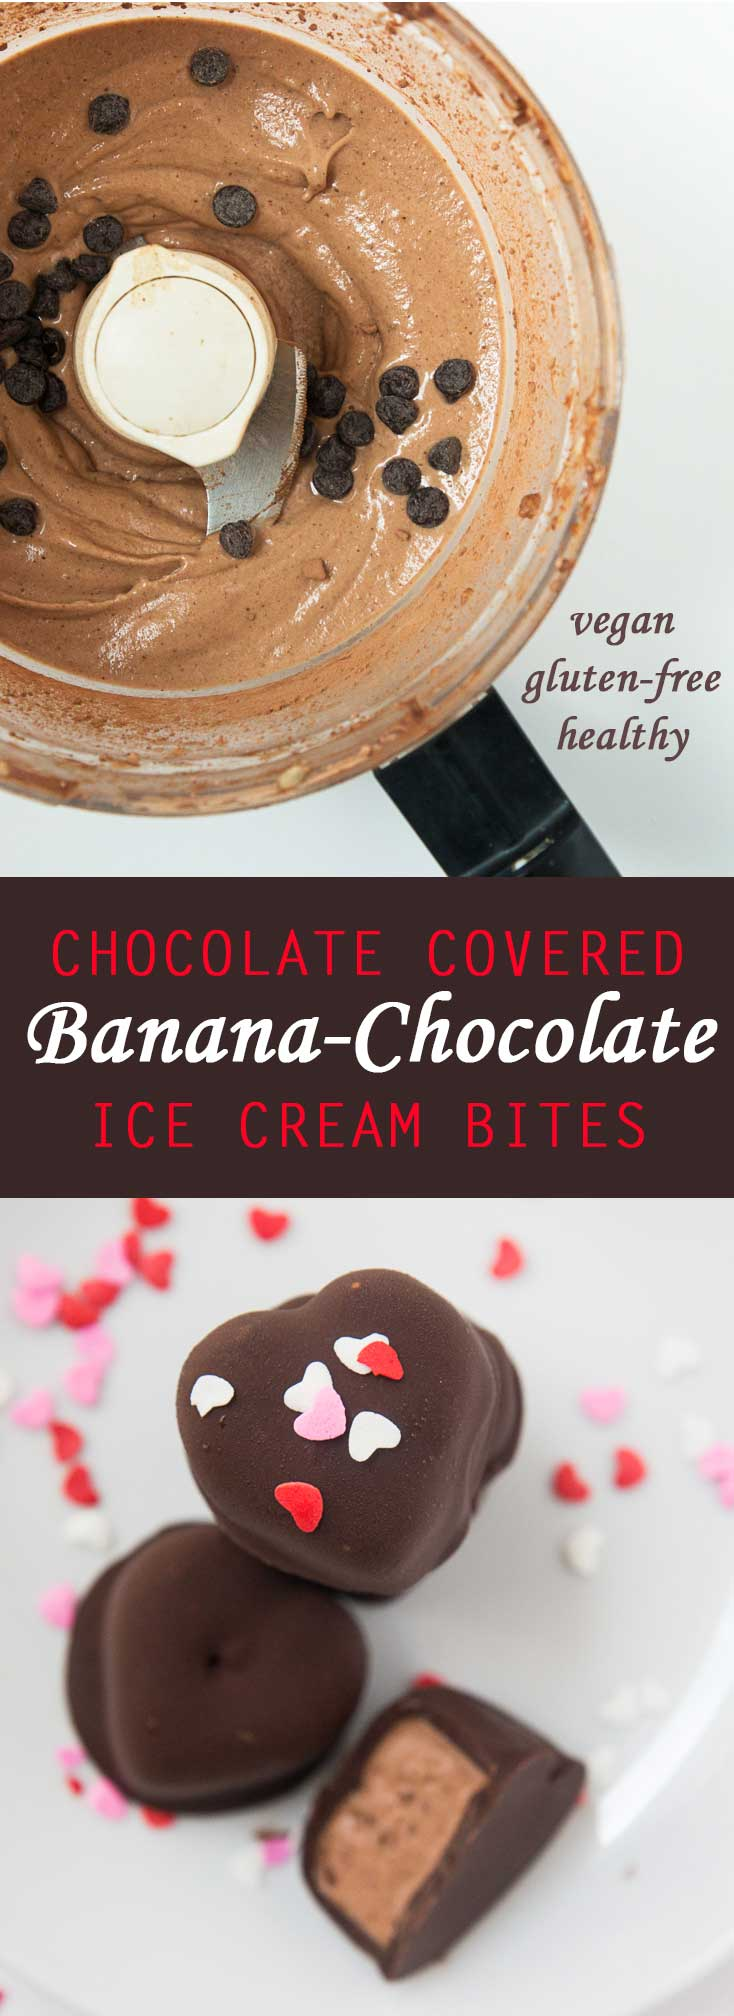 Chocolate Covered Banana-Chocolate Ice Cream Bites #vegan #glutenfree #healthy | www.Vegetariangastronomy.com